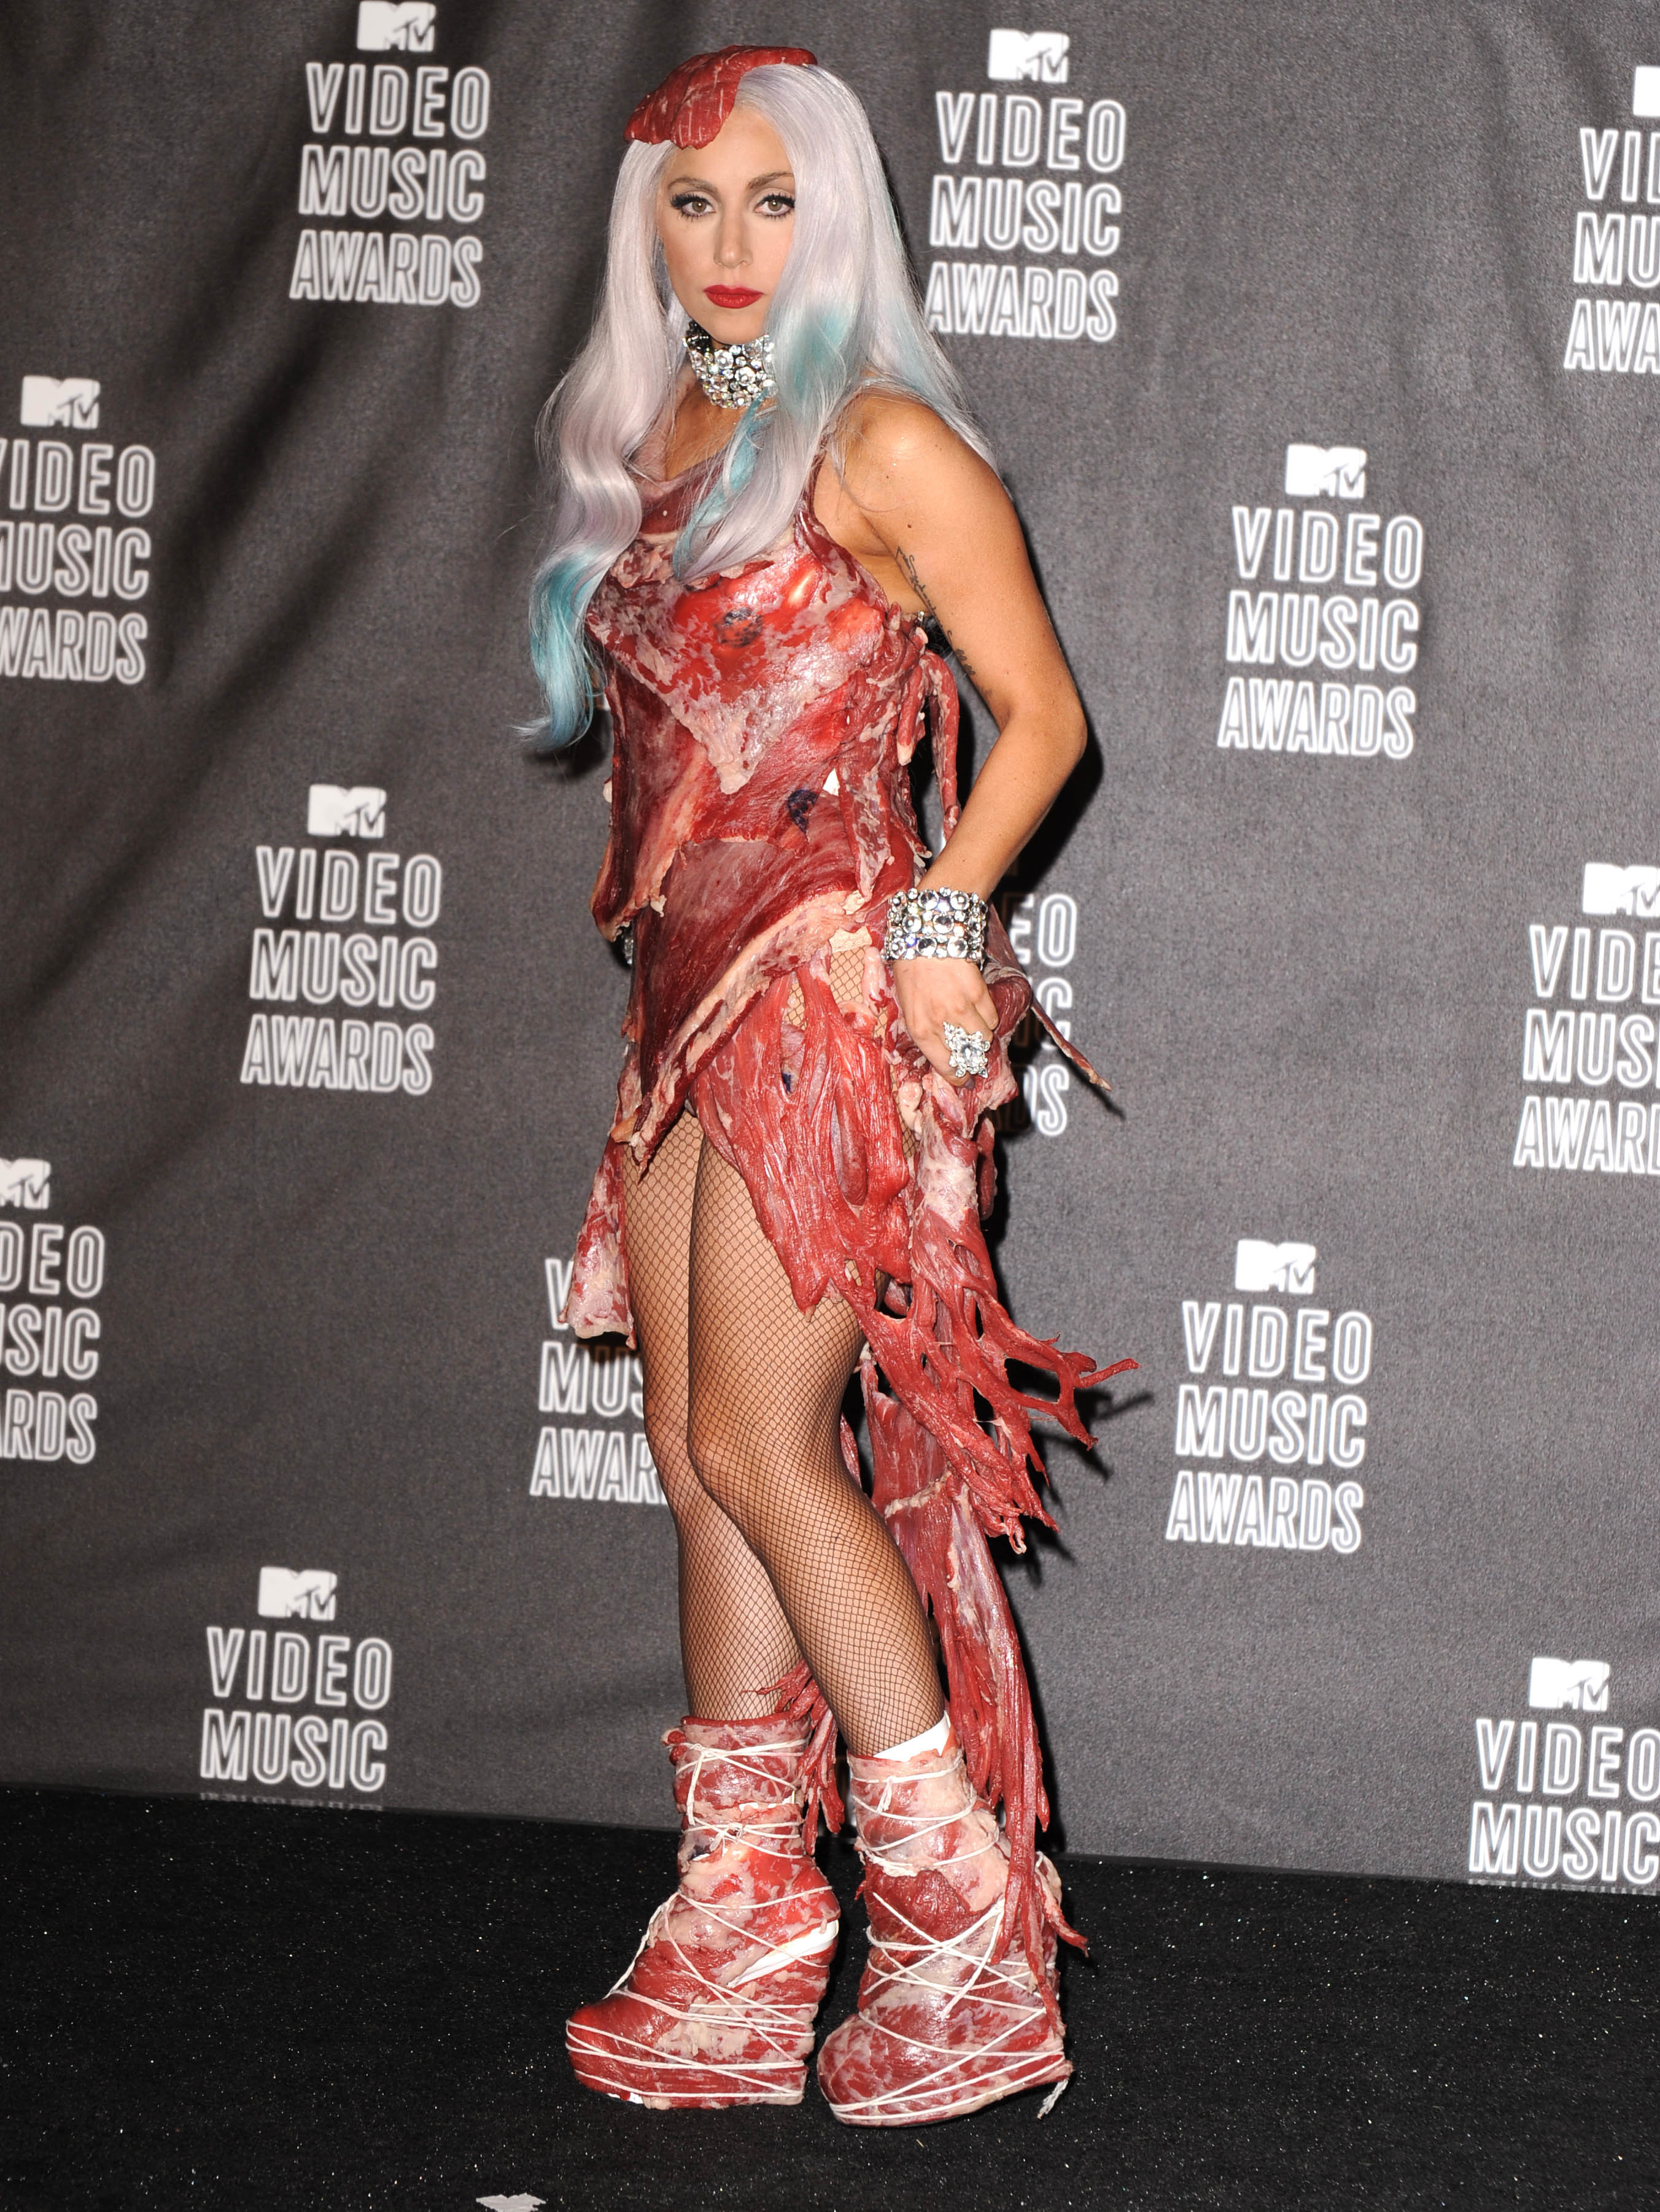 Lady Gaga attends the 2010 MTV Video Music Awards at Nokia Theatre L.A. Live in Los Angeles on Sept. 12, 2010.